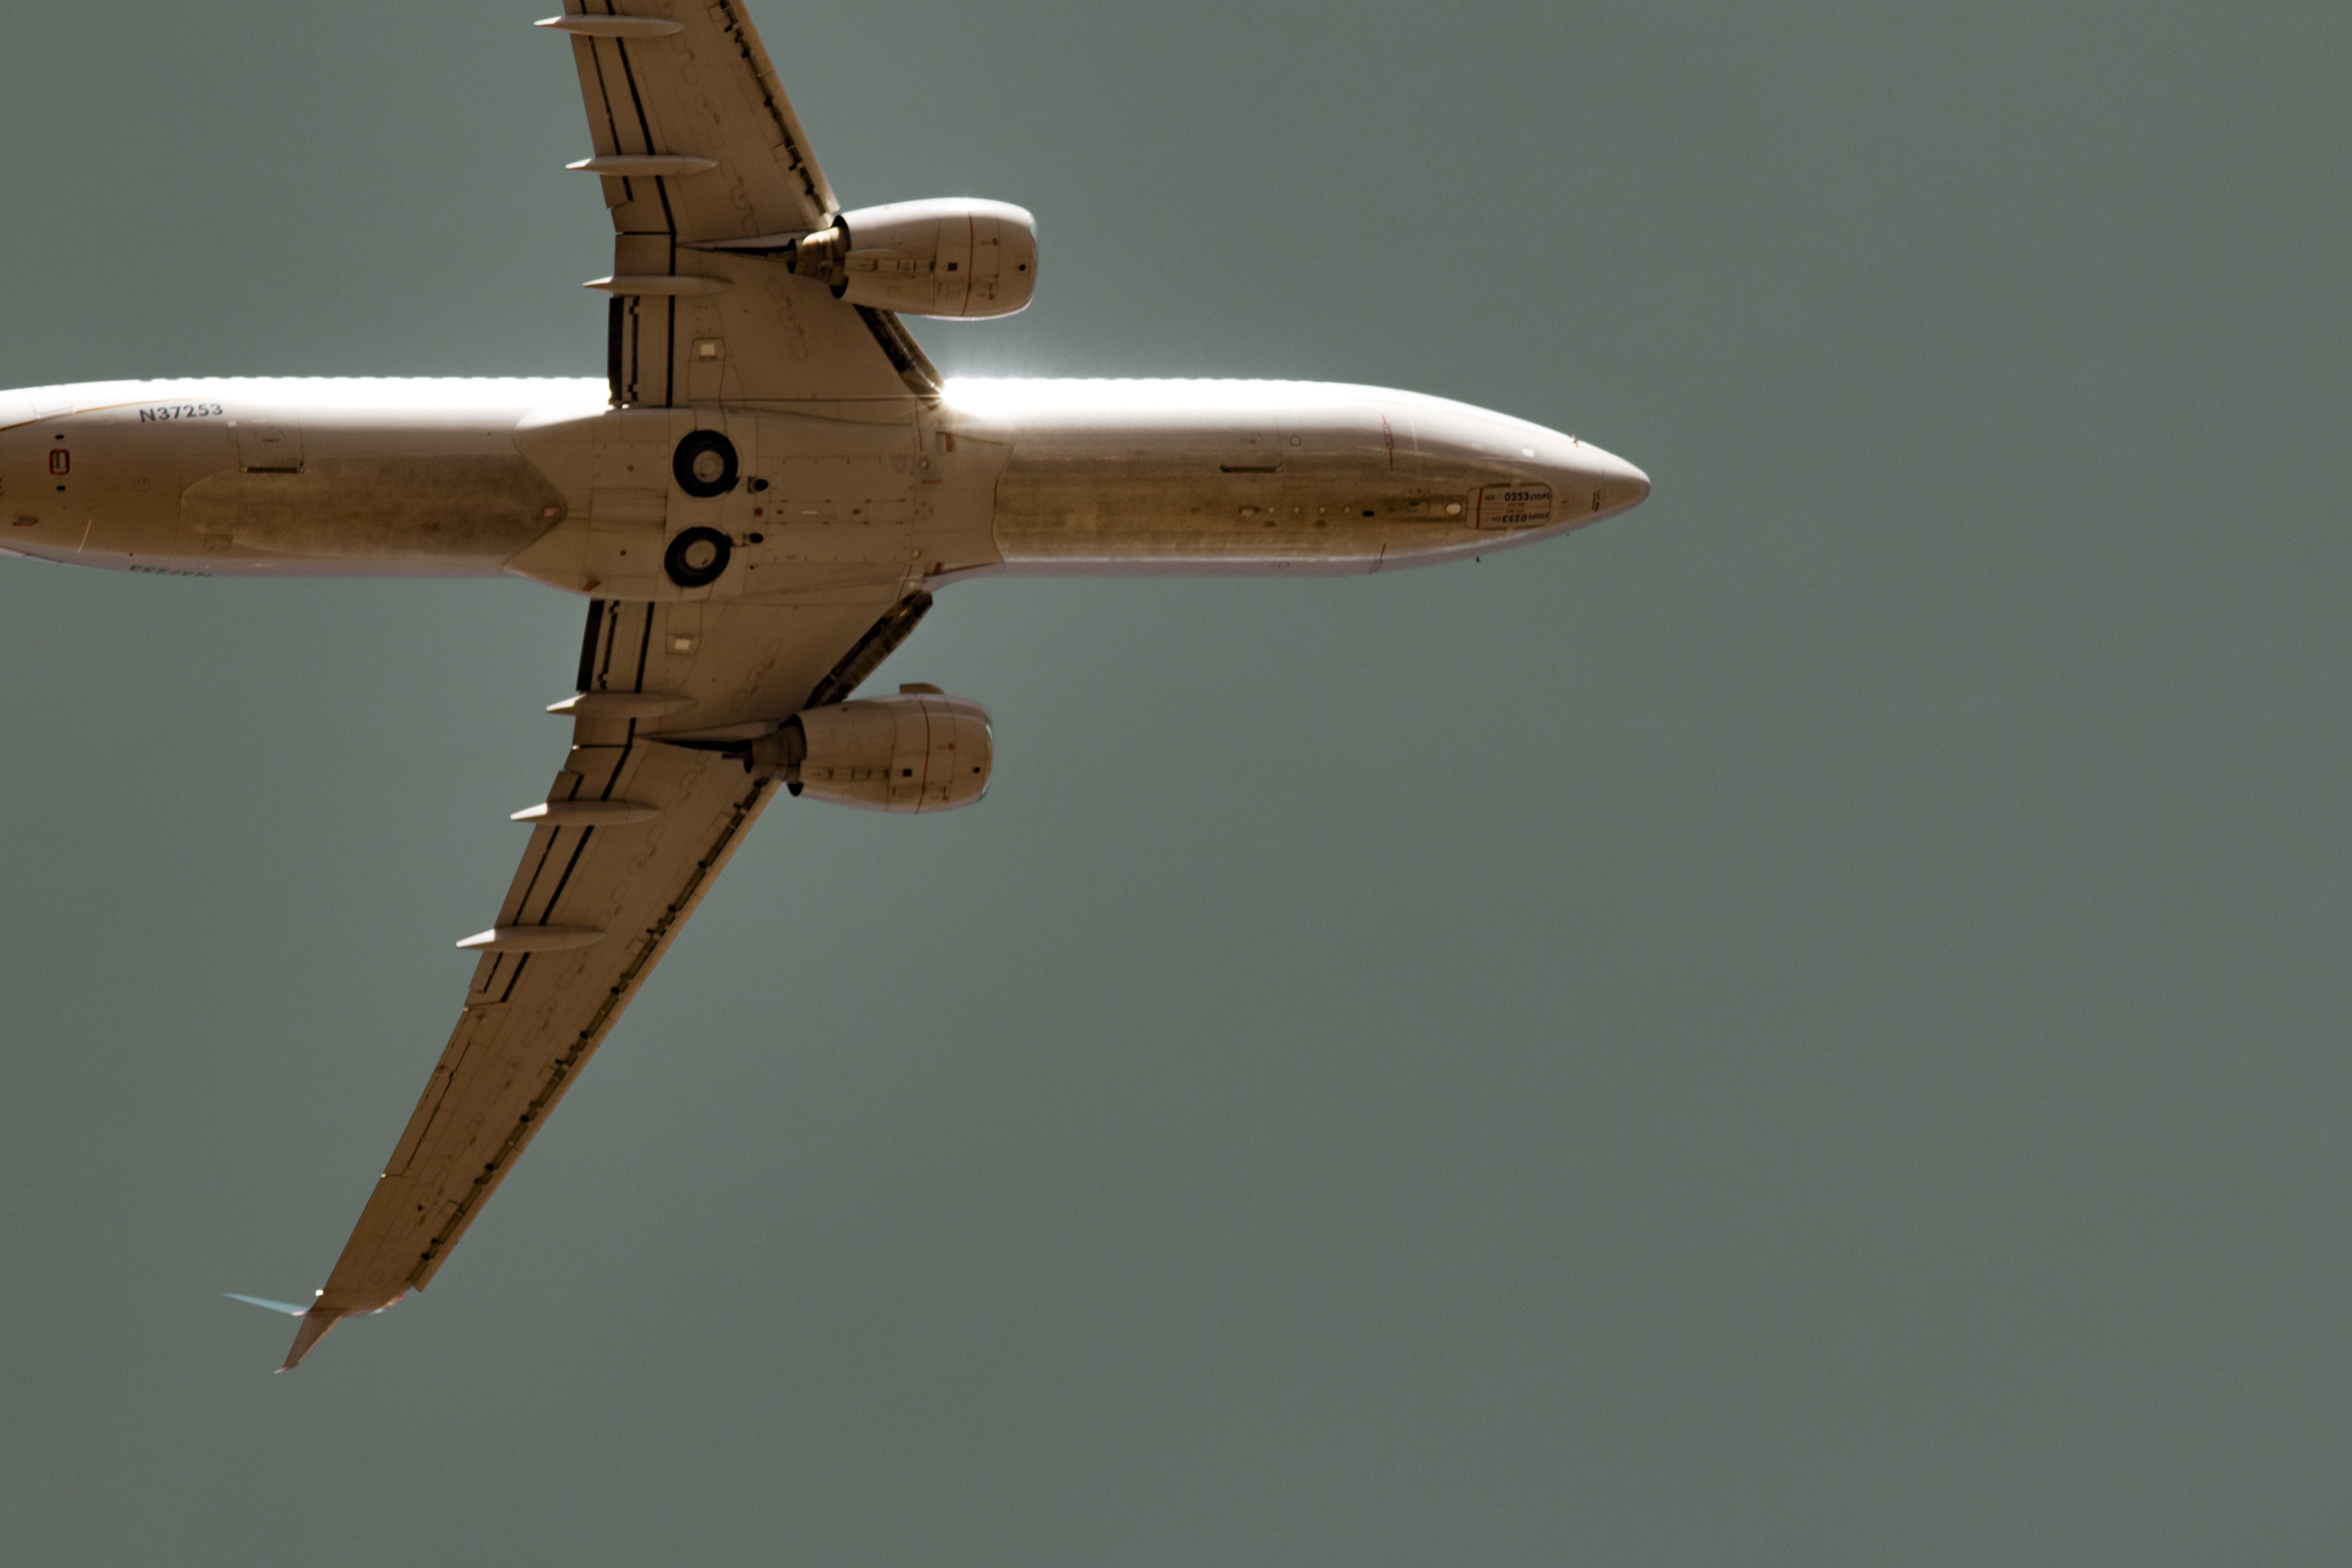 worm's-eye view of commercial airplane in sky